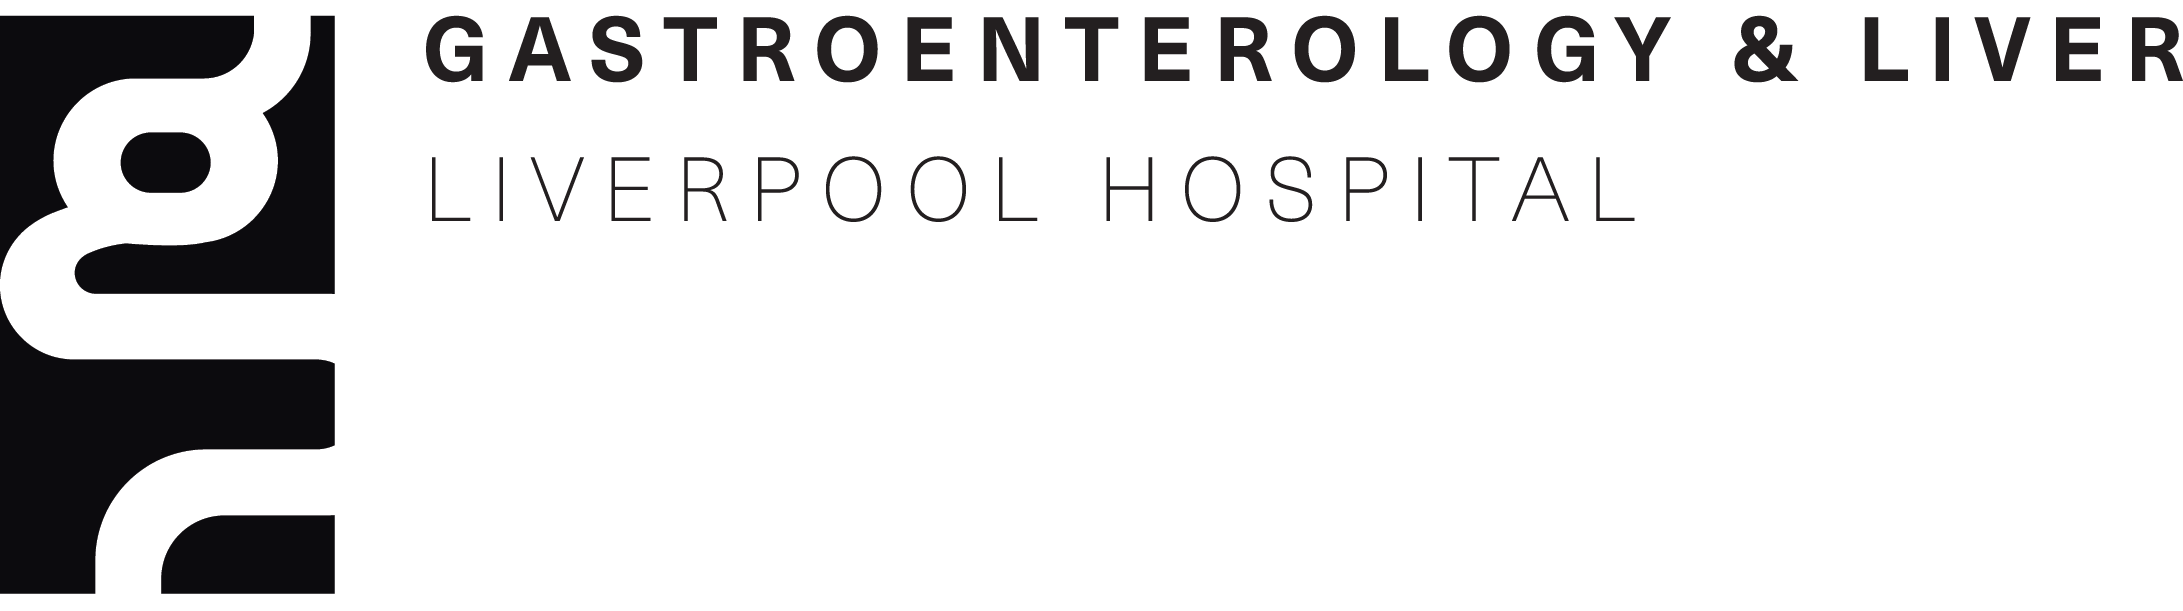 Gastroenterology and Liver - Liverpool Hospital